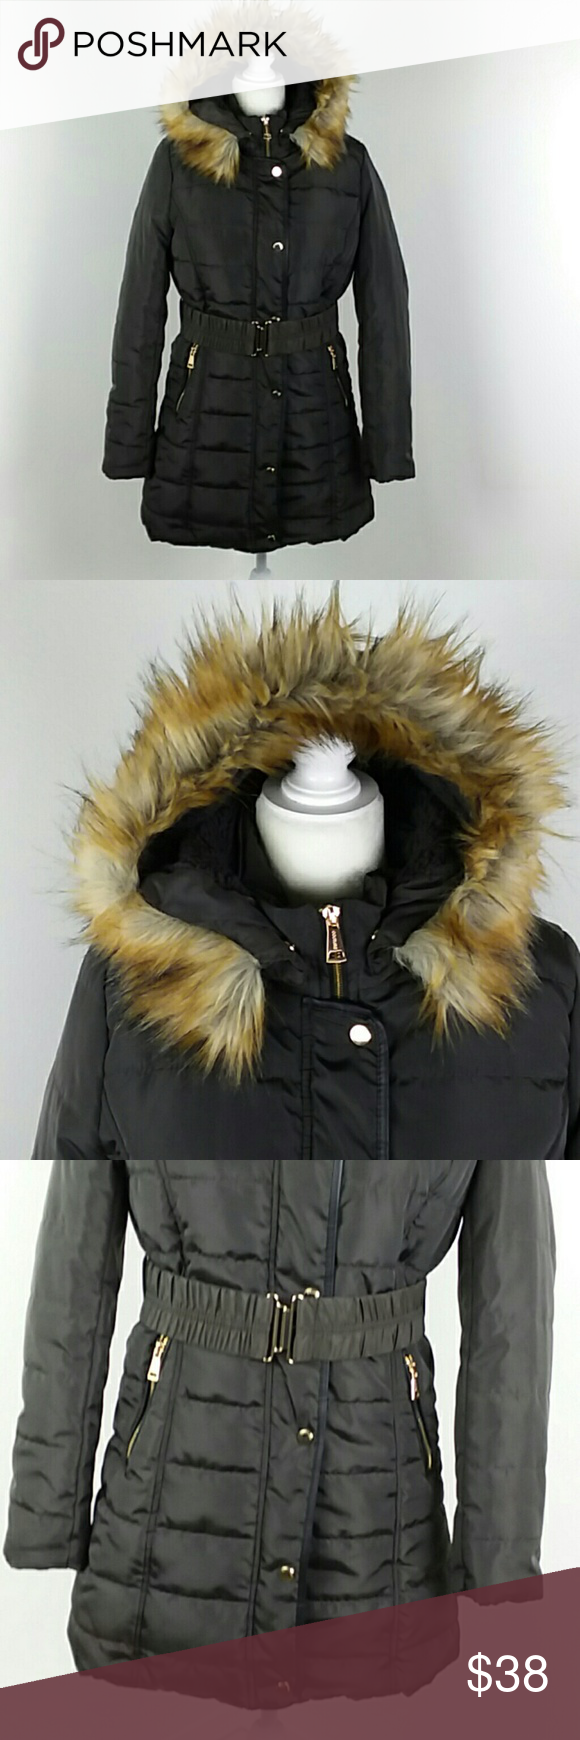 Nwt Marezzi Puffer Jacket Hooded Fleece Lined Girls Couture Fashion Clothes Design [ 1740 x 580 Pixel ]